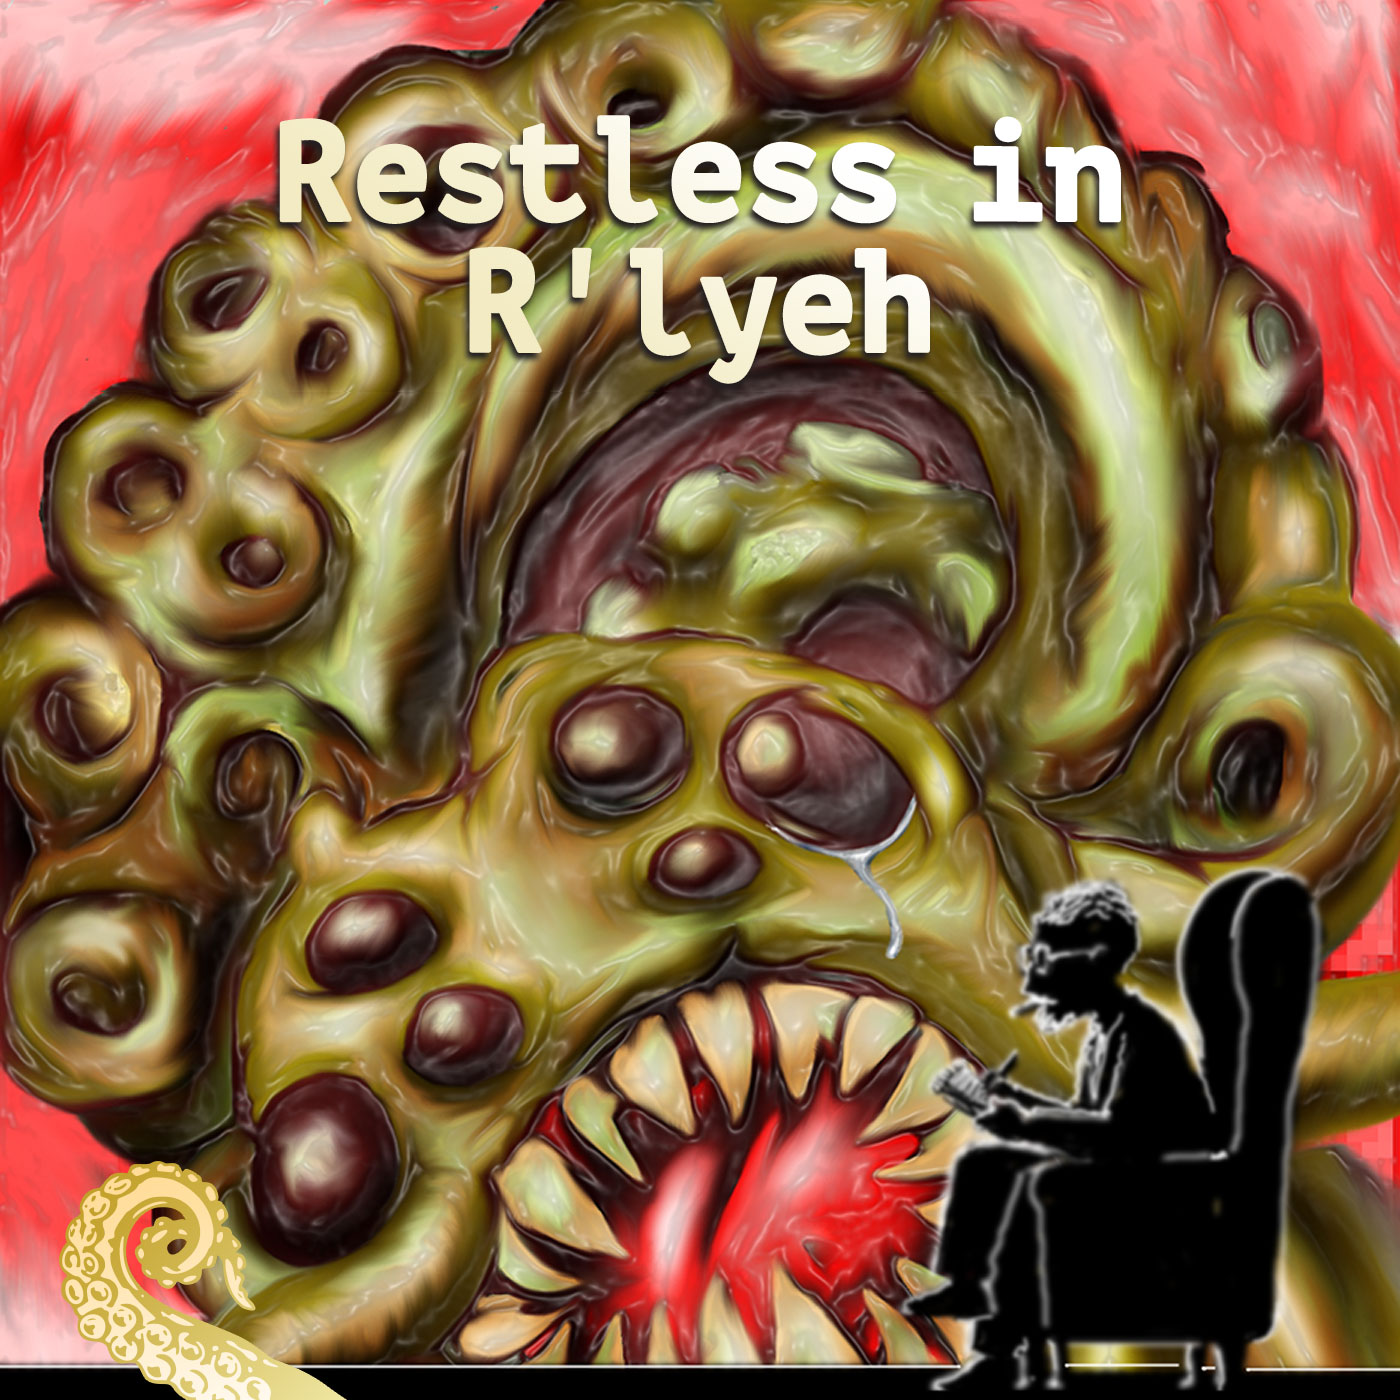 Drabblecast cover for Restless in R'lyeh by Greg Cravens